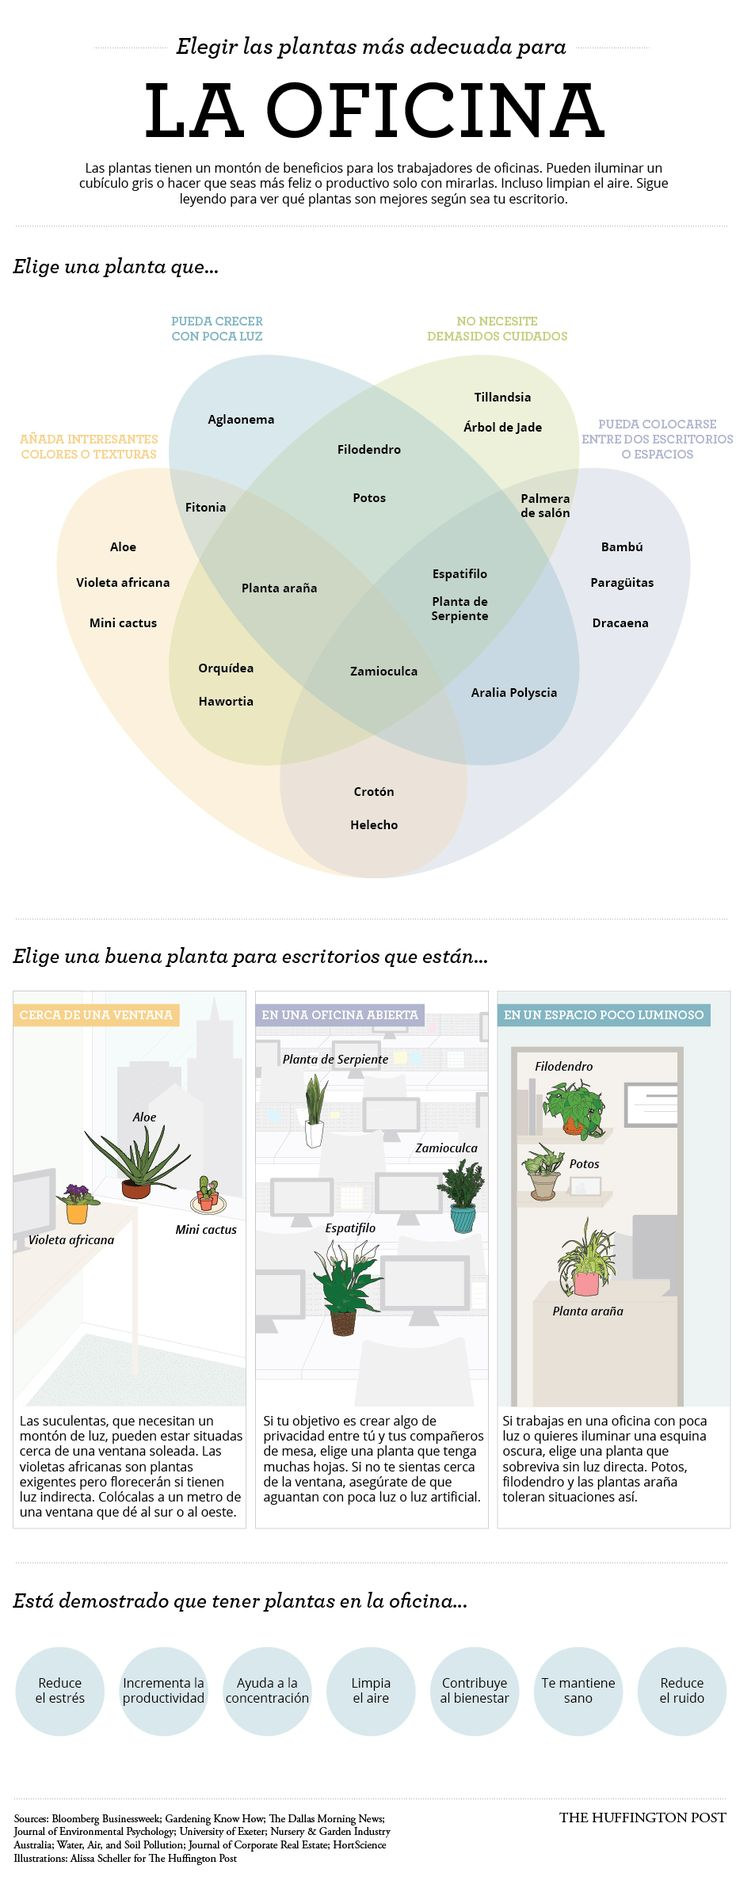 Decorar tu escritorio con plantas mejora tu productividad / ElHuffPost | #readyforergonomics #workspaces